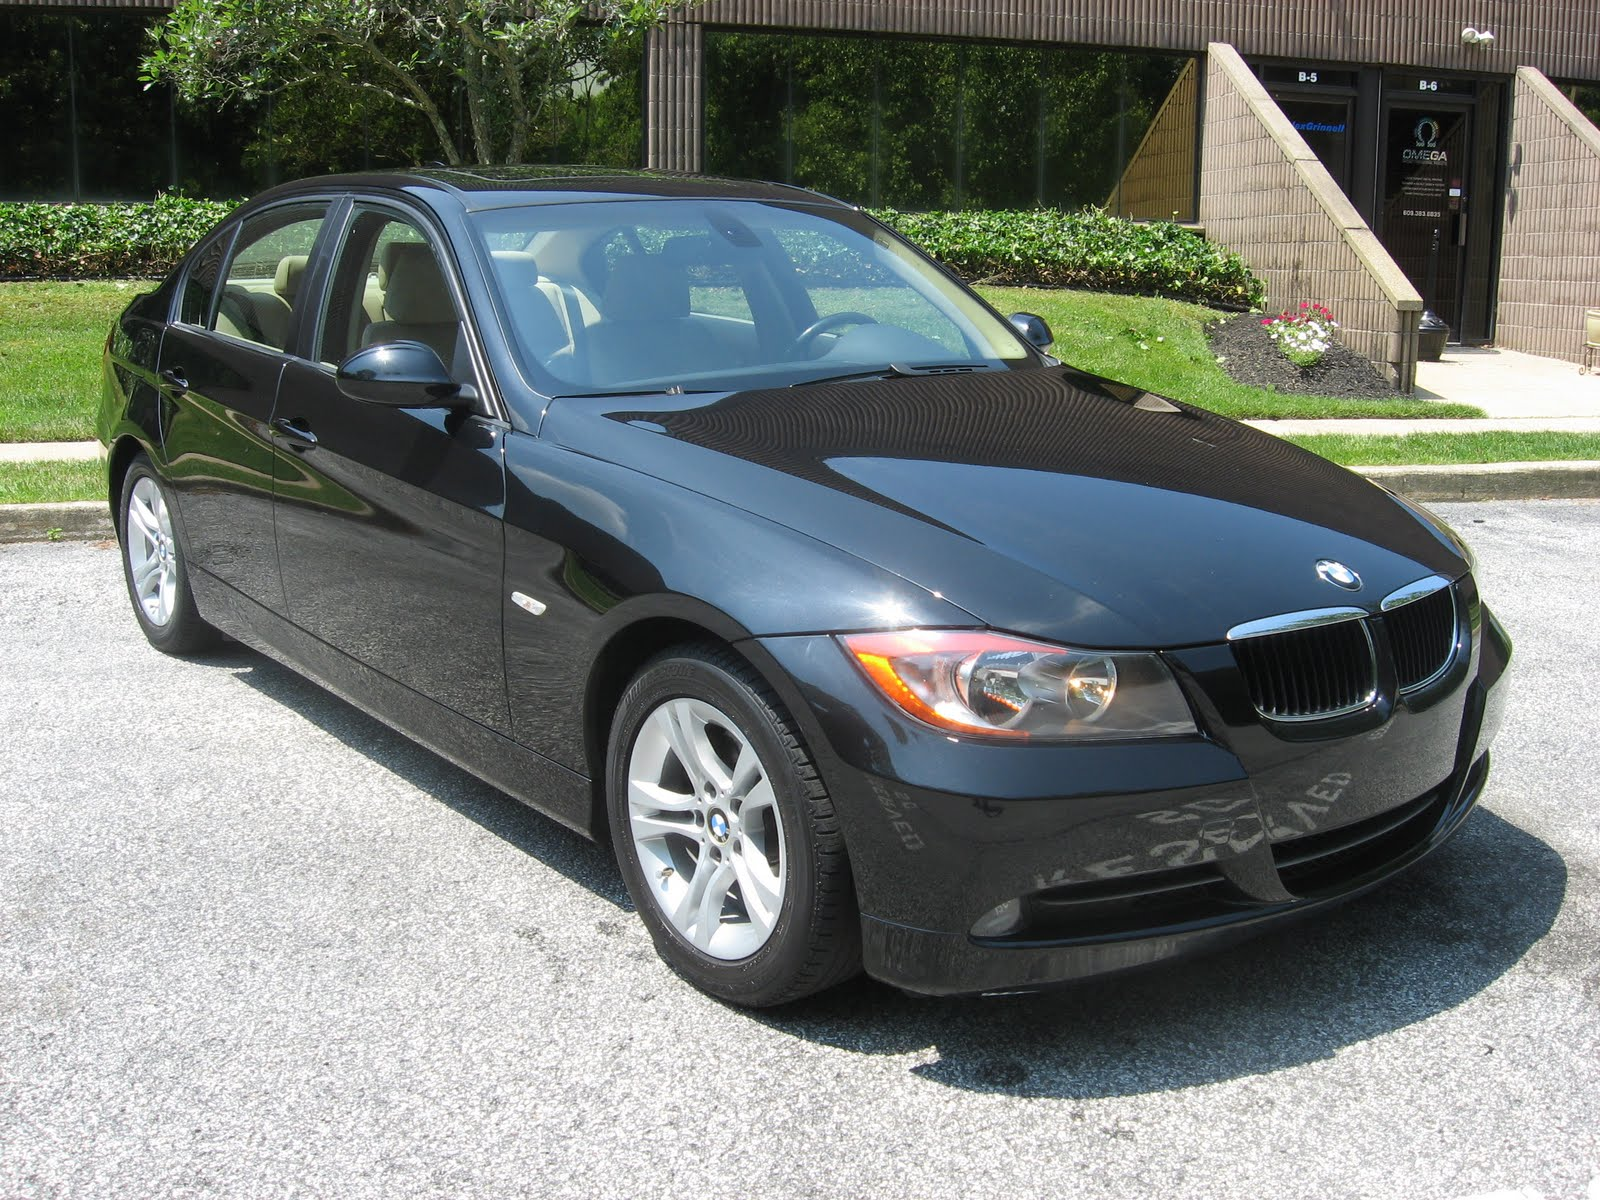 Bmw 328i 2006 Review Amazing Pictures And Images Look